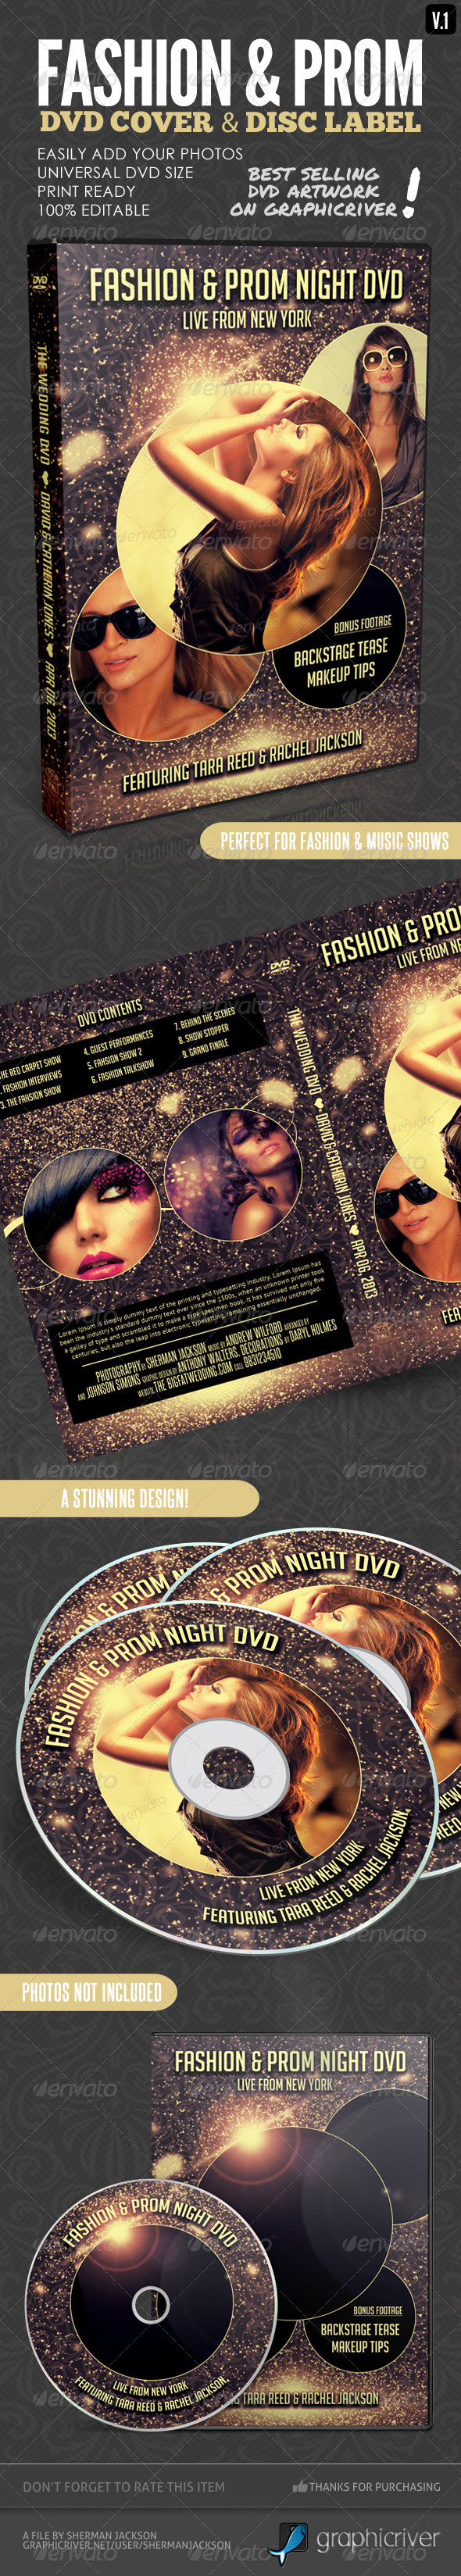 Fashion Show & Prom Night DVD Covers - CD & DVD Artwork Print Templates